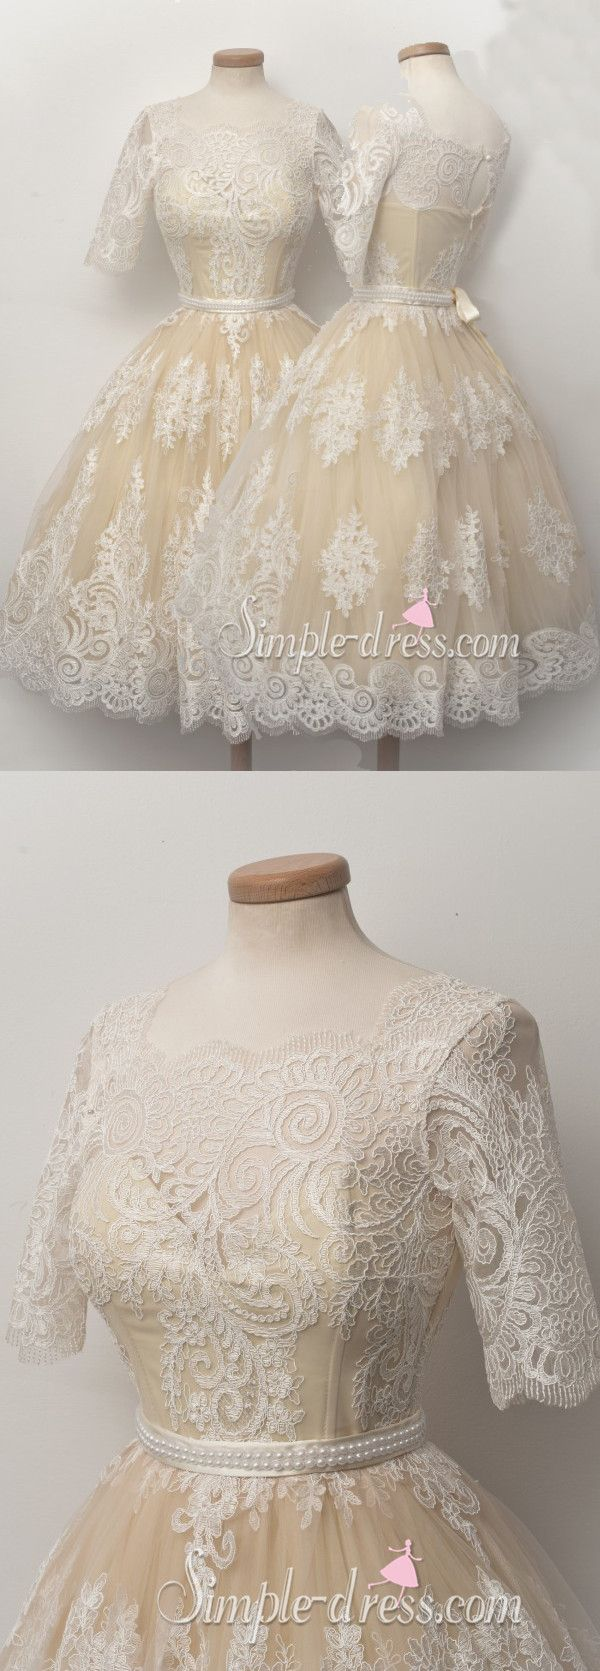 ivory short half-sleeves lace homecoming dress, lace homecoming dress, short homecoming dress, wedding dress, party dress, evening dress